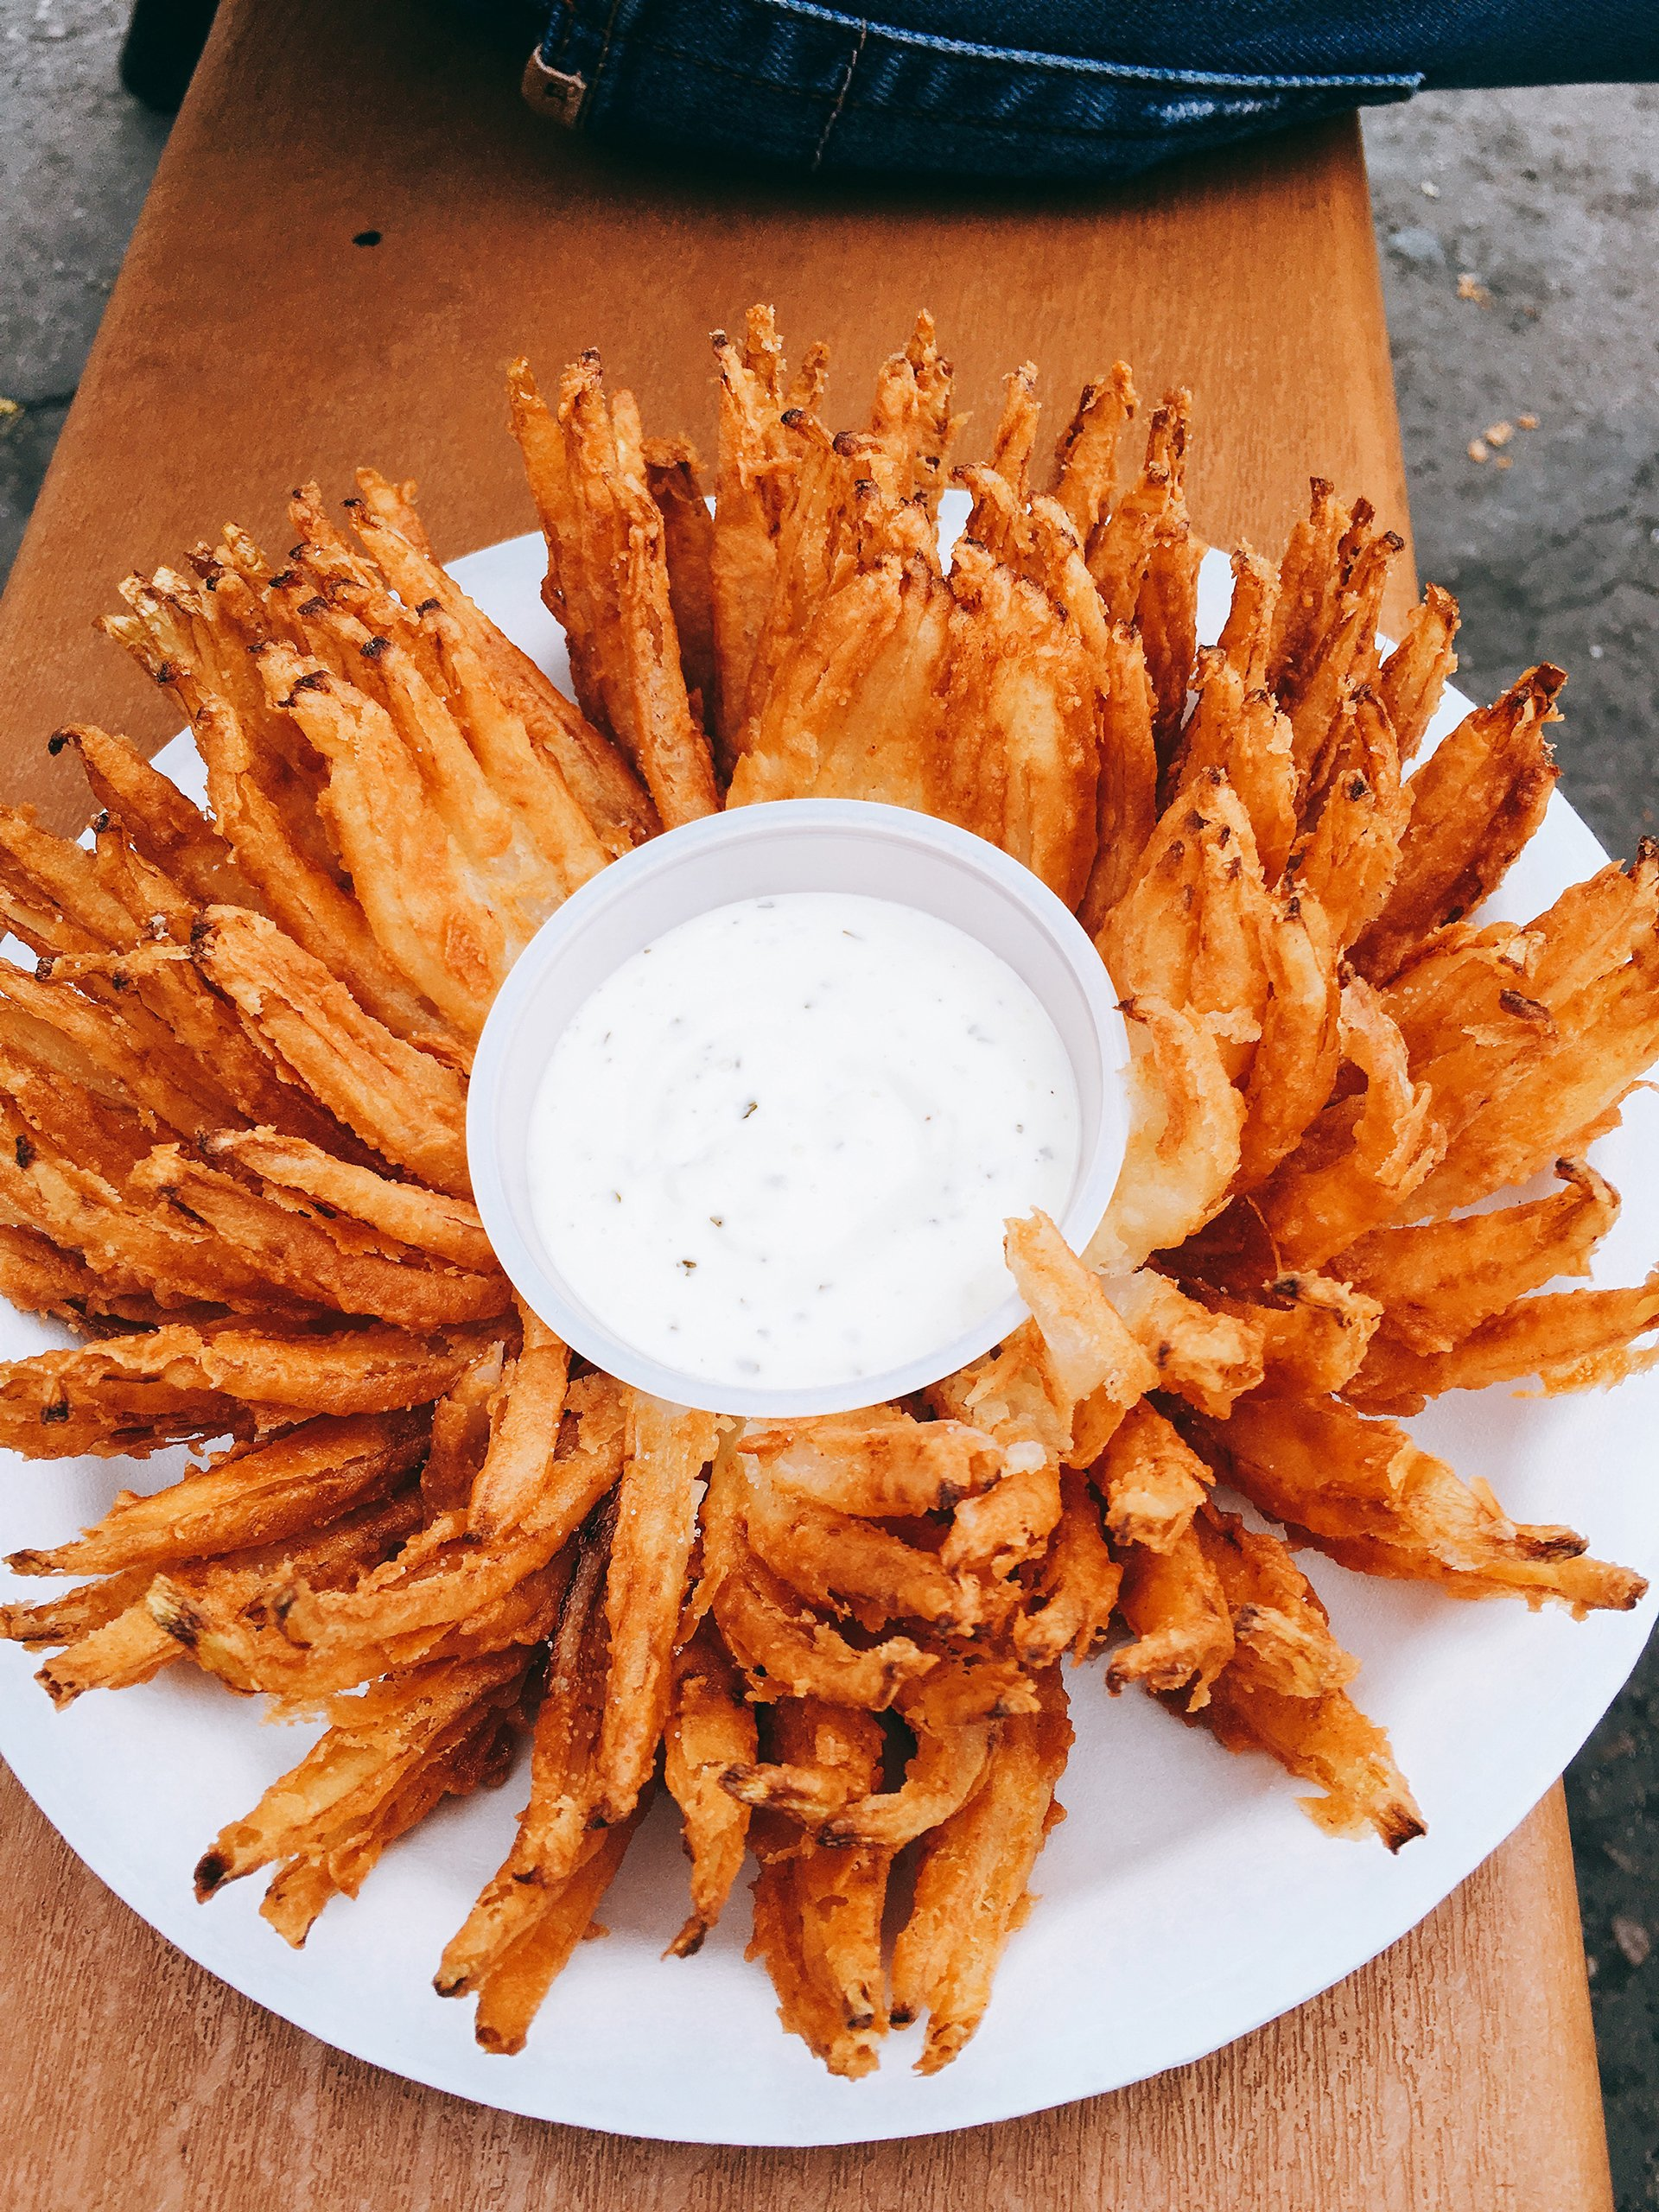 I mean, how often do you allow yourself to devour an entire blooming onion?